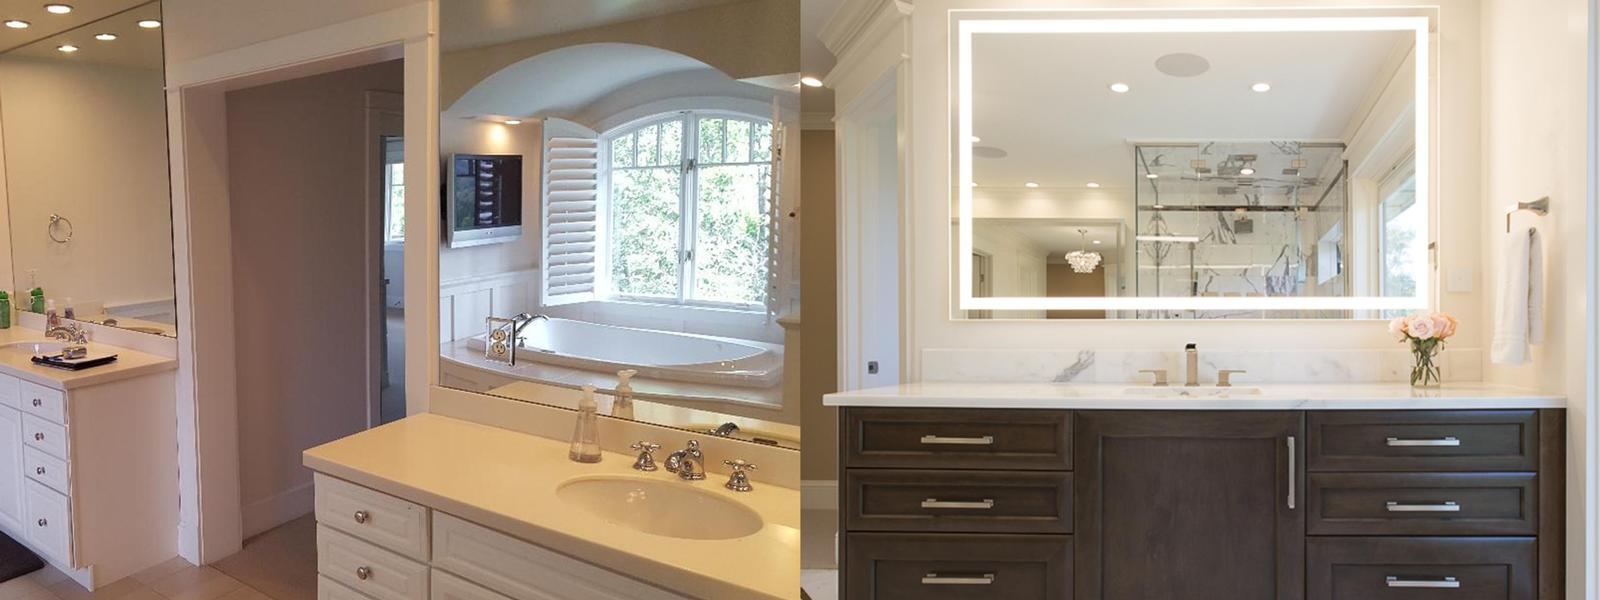 Before And After Interior Design Photo Gallery Kathryn